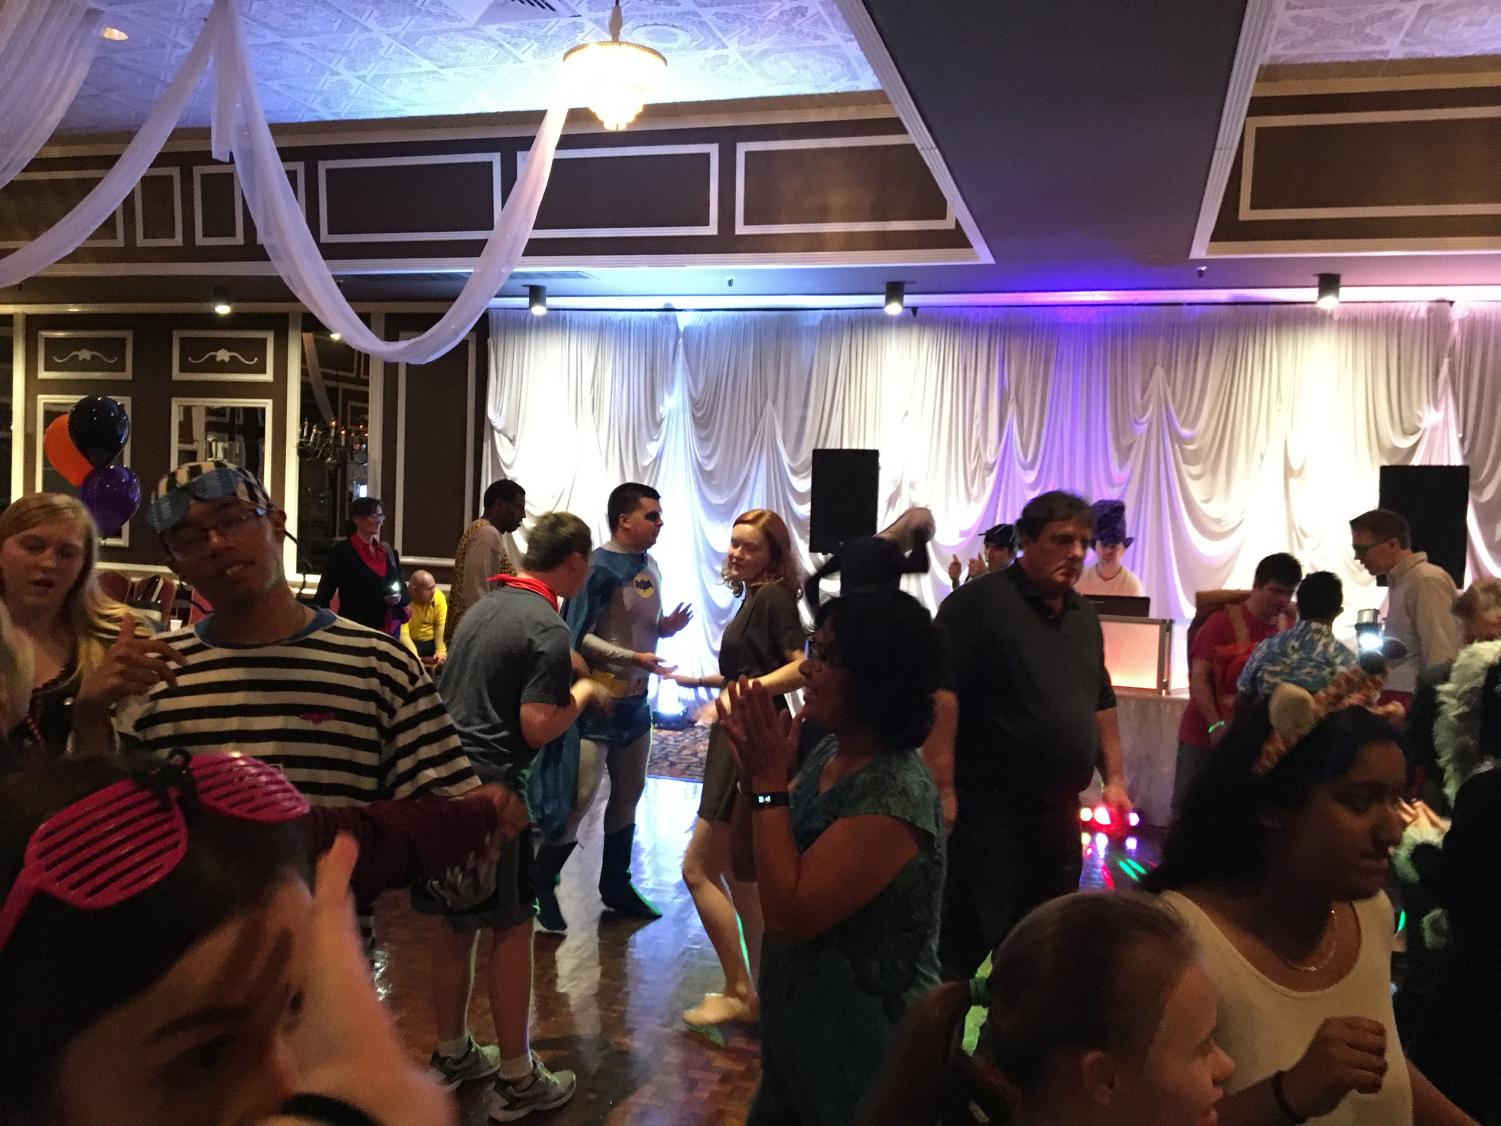 The Halloween Dance brought on by The Special Kids Day Organization starts off with a bang bringing around 20 people to the dance floor. 0ct. 22, 2017